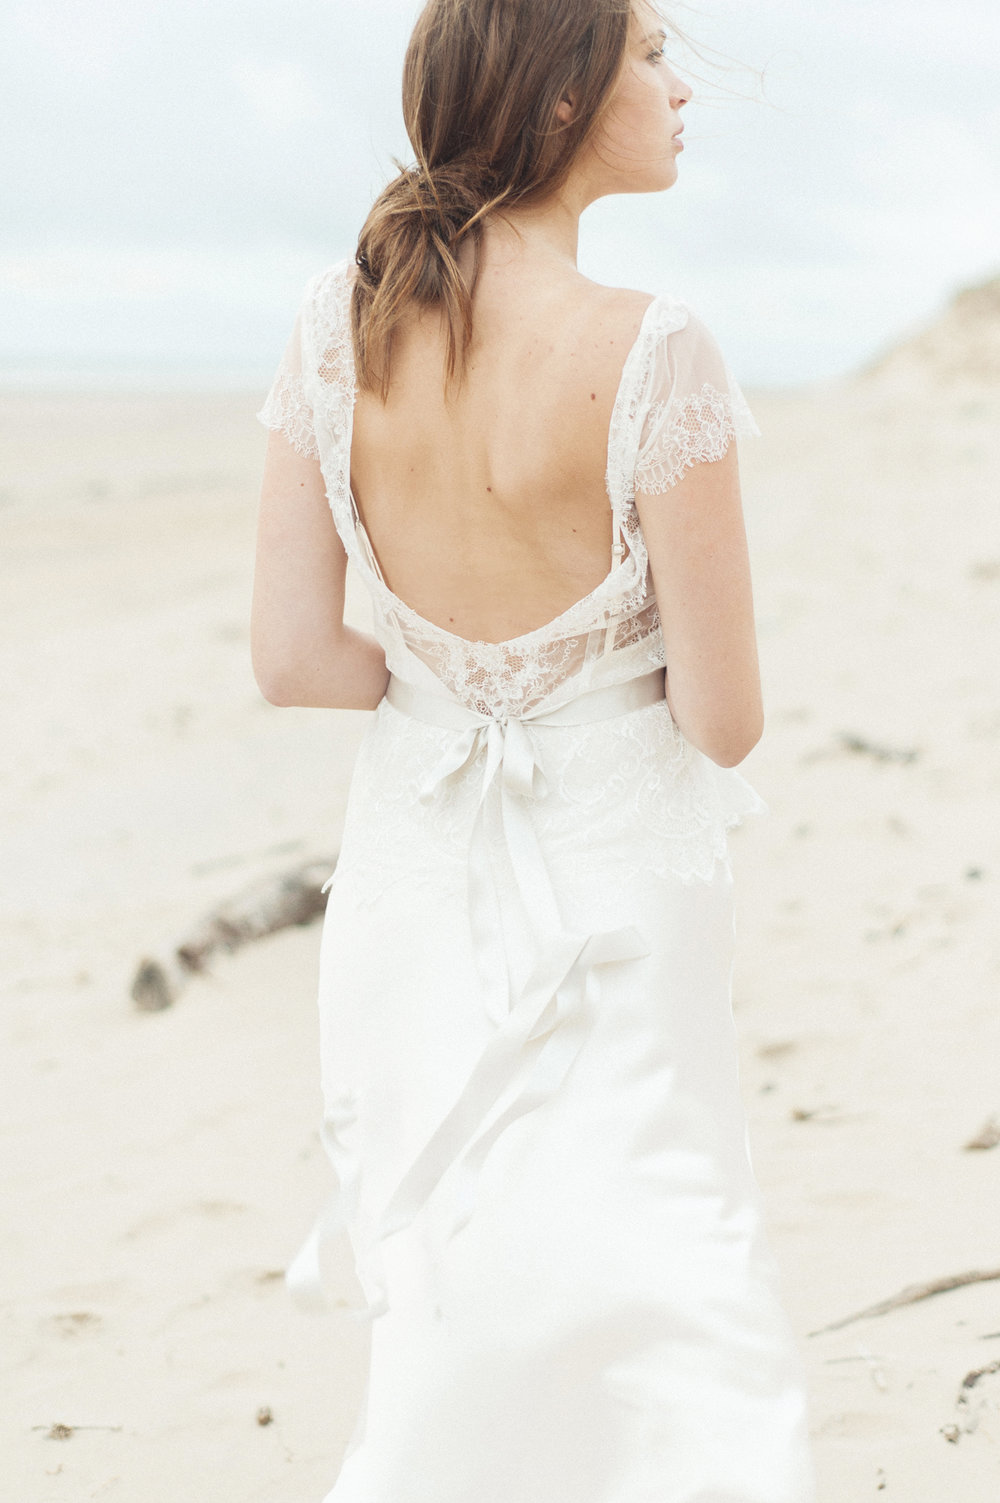 Kate-Beaumont-Wedding-Dresses-Formby-Beach-Emma-Pilkington-39.jpg